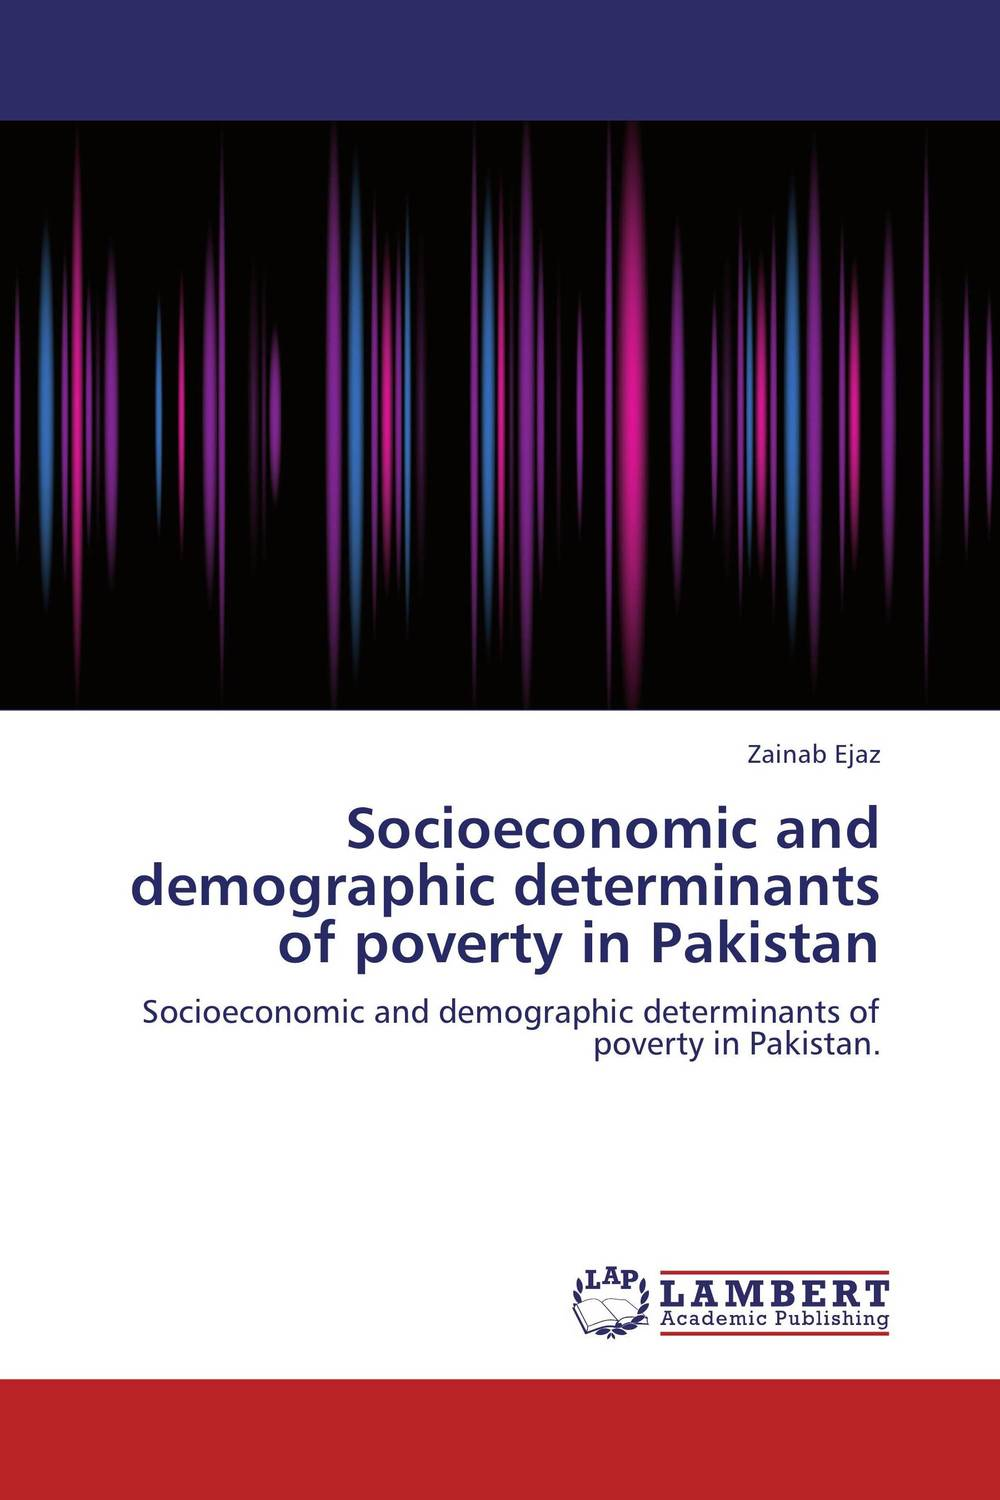 Socioeconomic and demographic determinants of poverty in Pakistan the merchant of venice arabesque концентрированные духи 100 мл